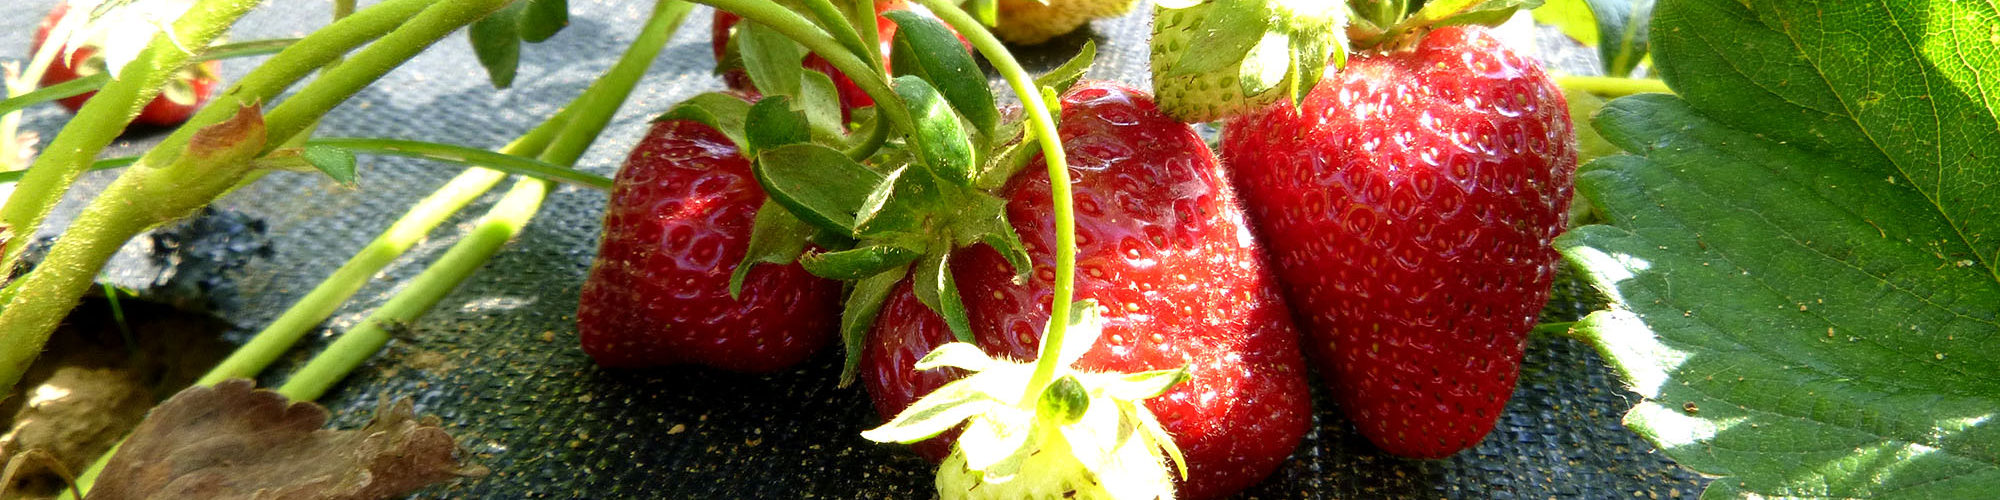 Strawberries grown on Full Sun Farm